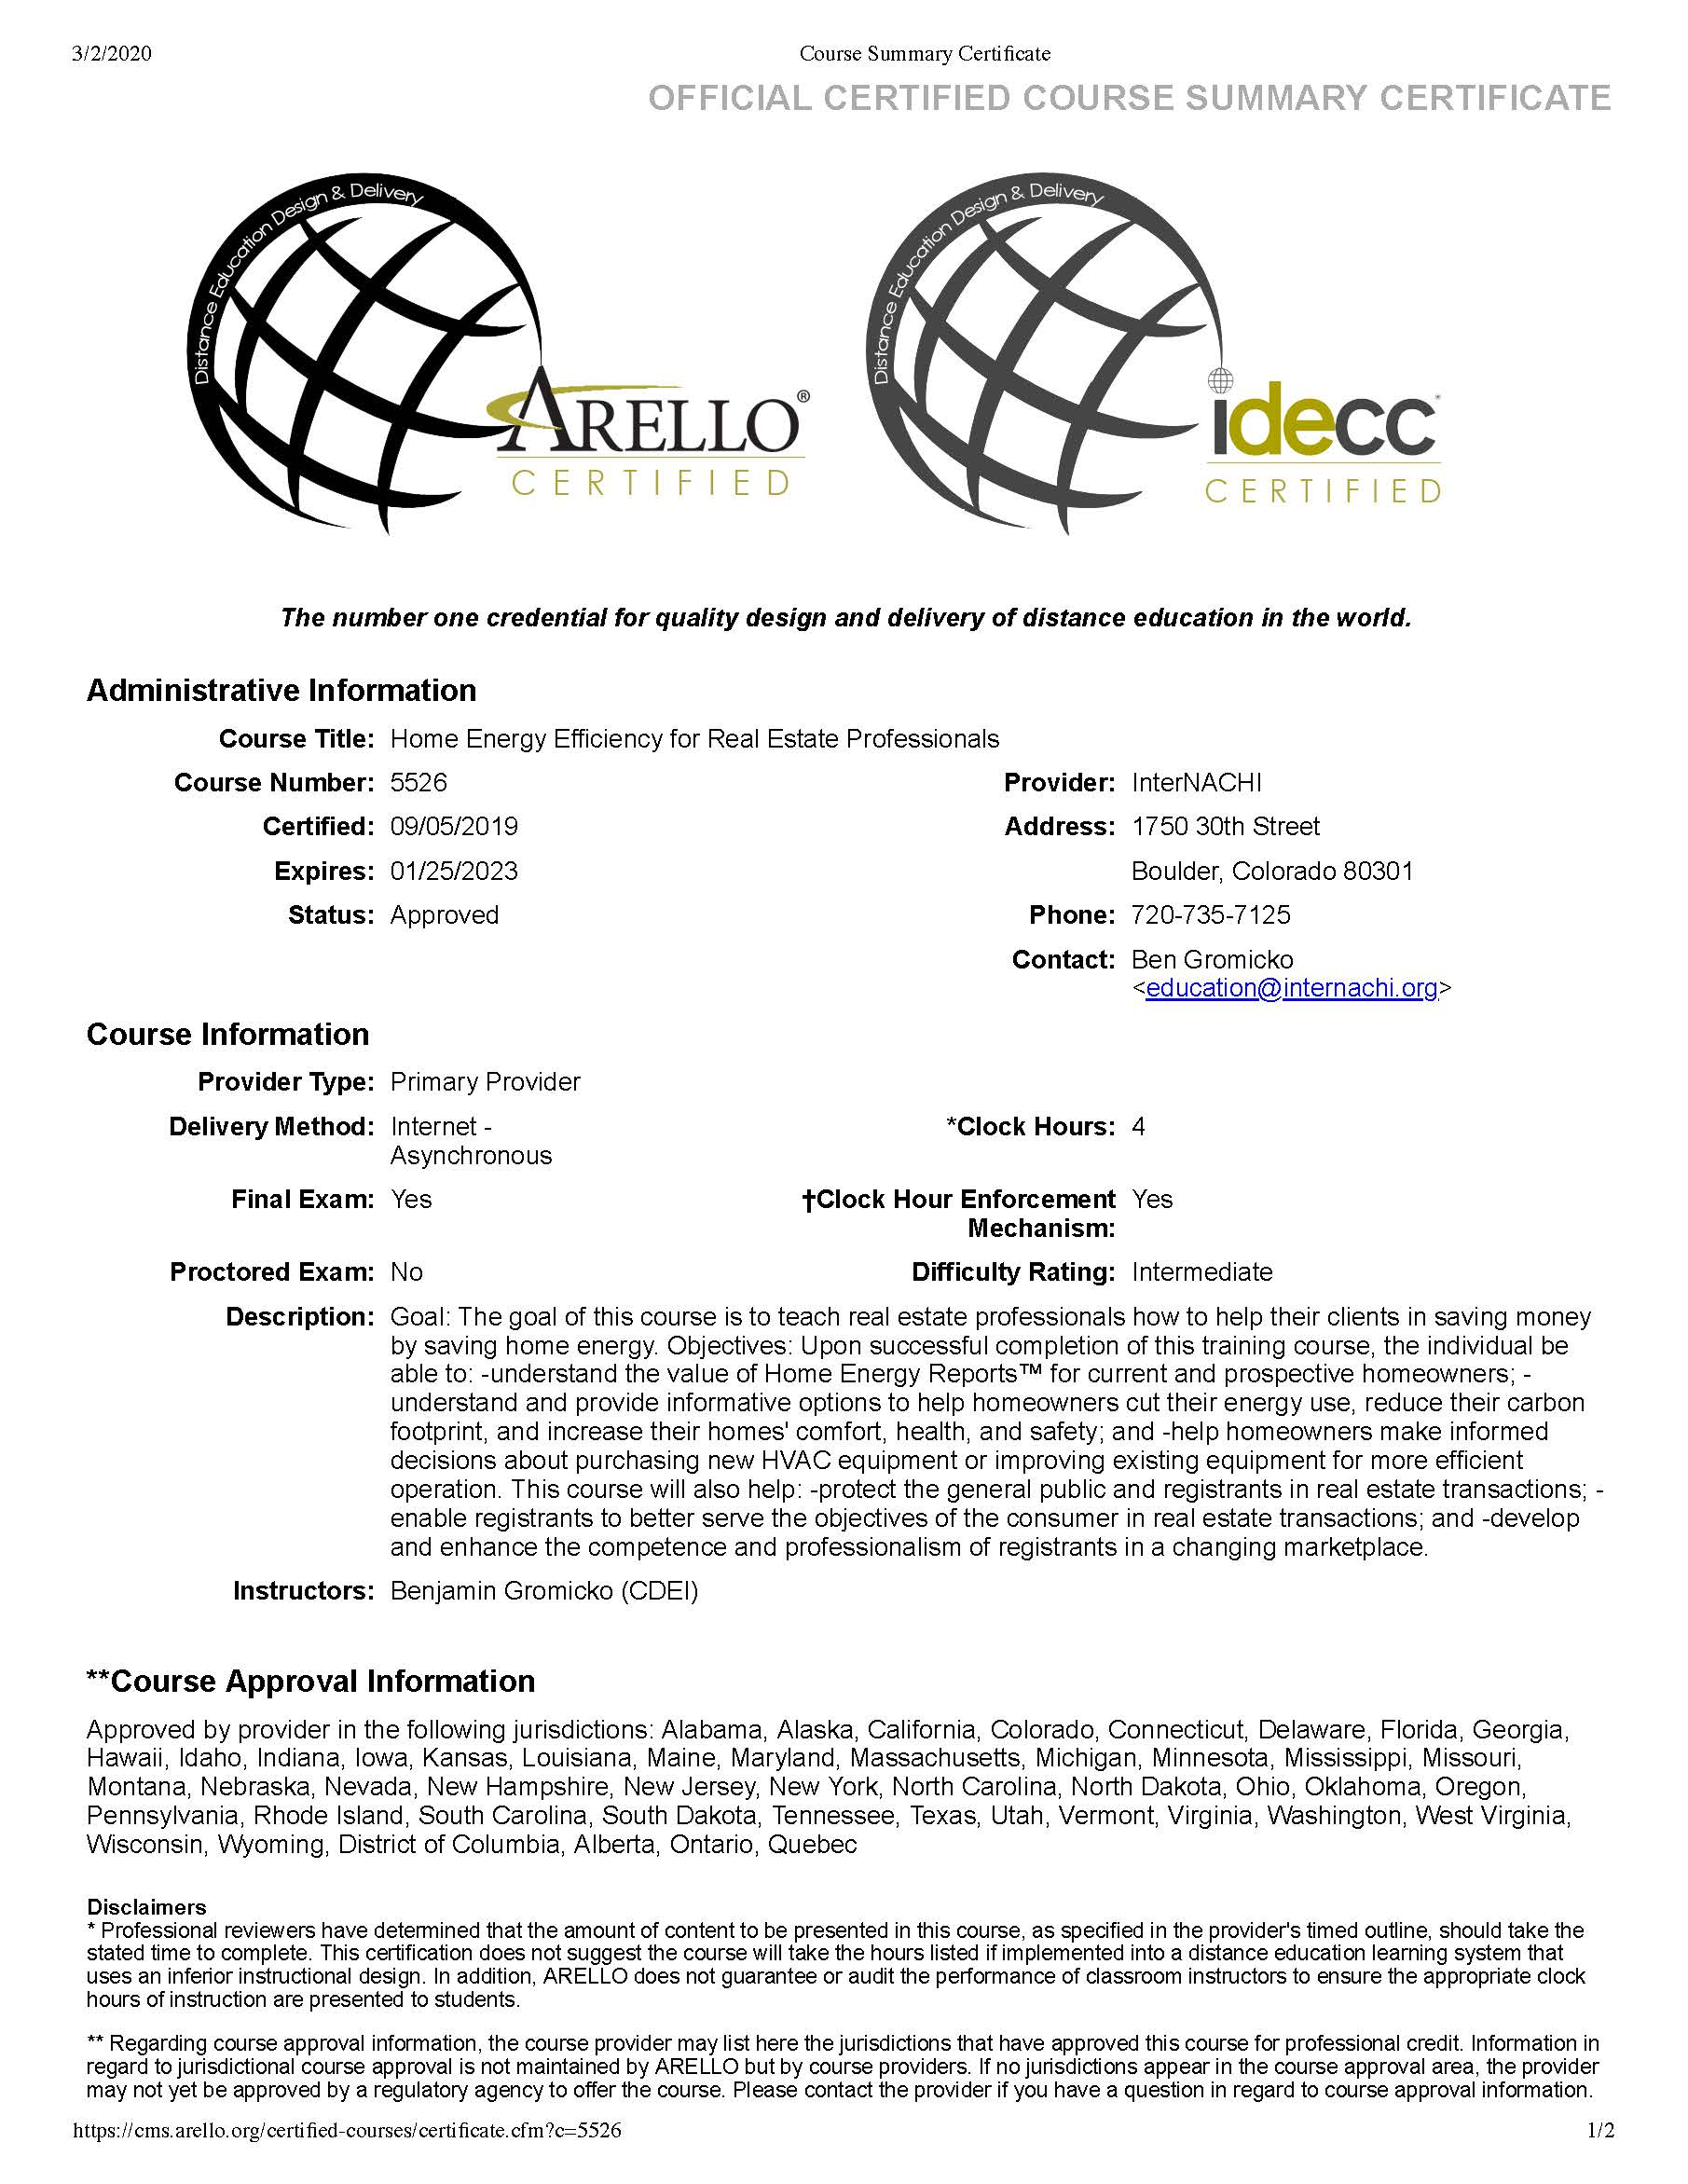 Free Online Arello And Idecc Approved Continuing Education Courses For Real Estate Professionals Internachi